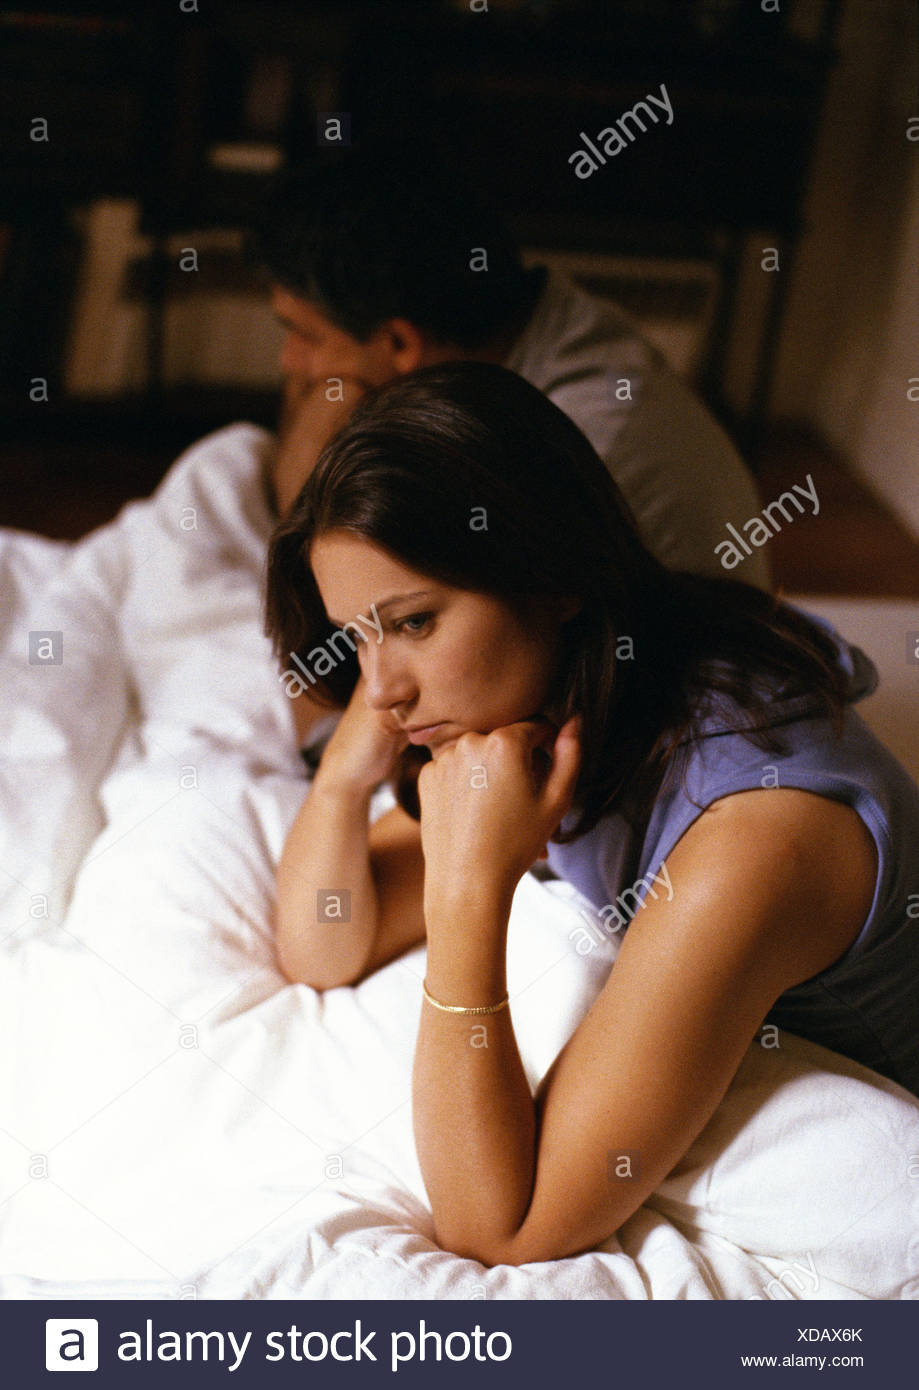 Couple sitting on bed, leaning on elbows, turned away from each other Stock Photo